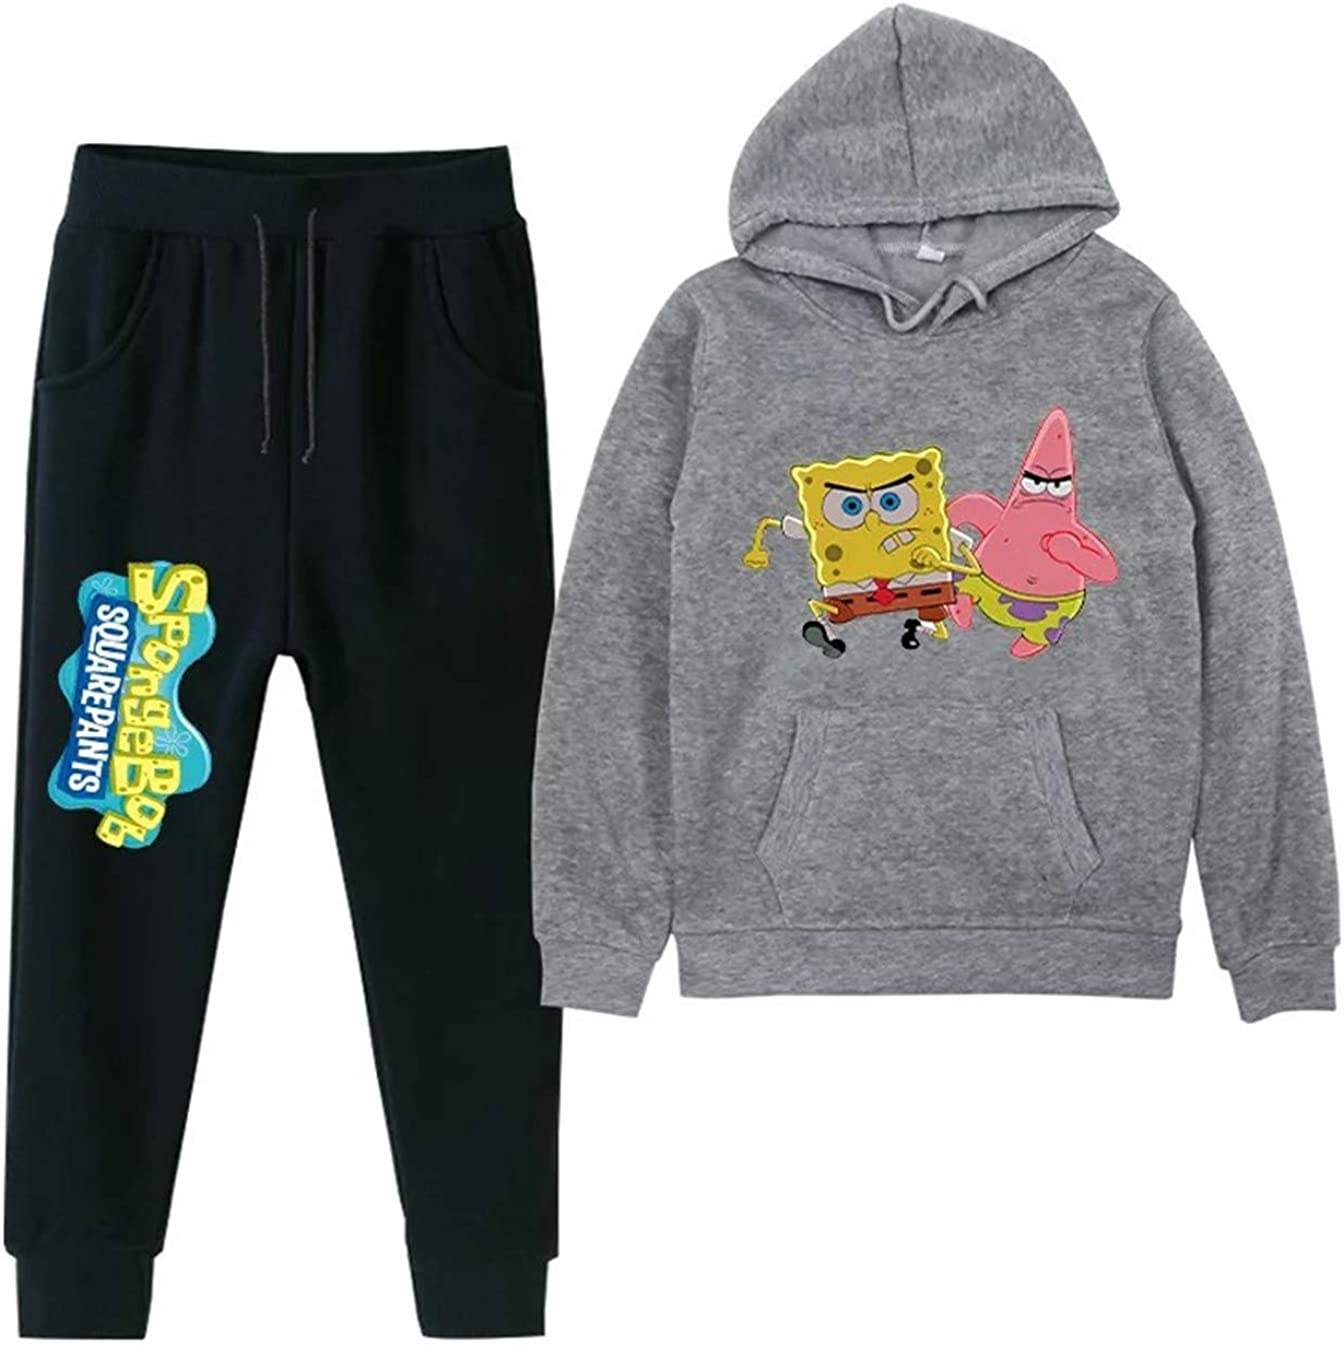 XMTIHE Little Boys Girls Spongebob Pullover Fleece Sweatshirts-Unisex Child Casual Warm Hoodies and Sweatpants Set